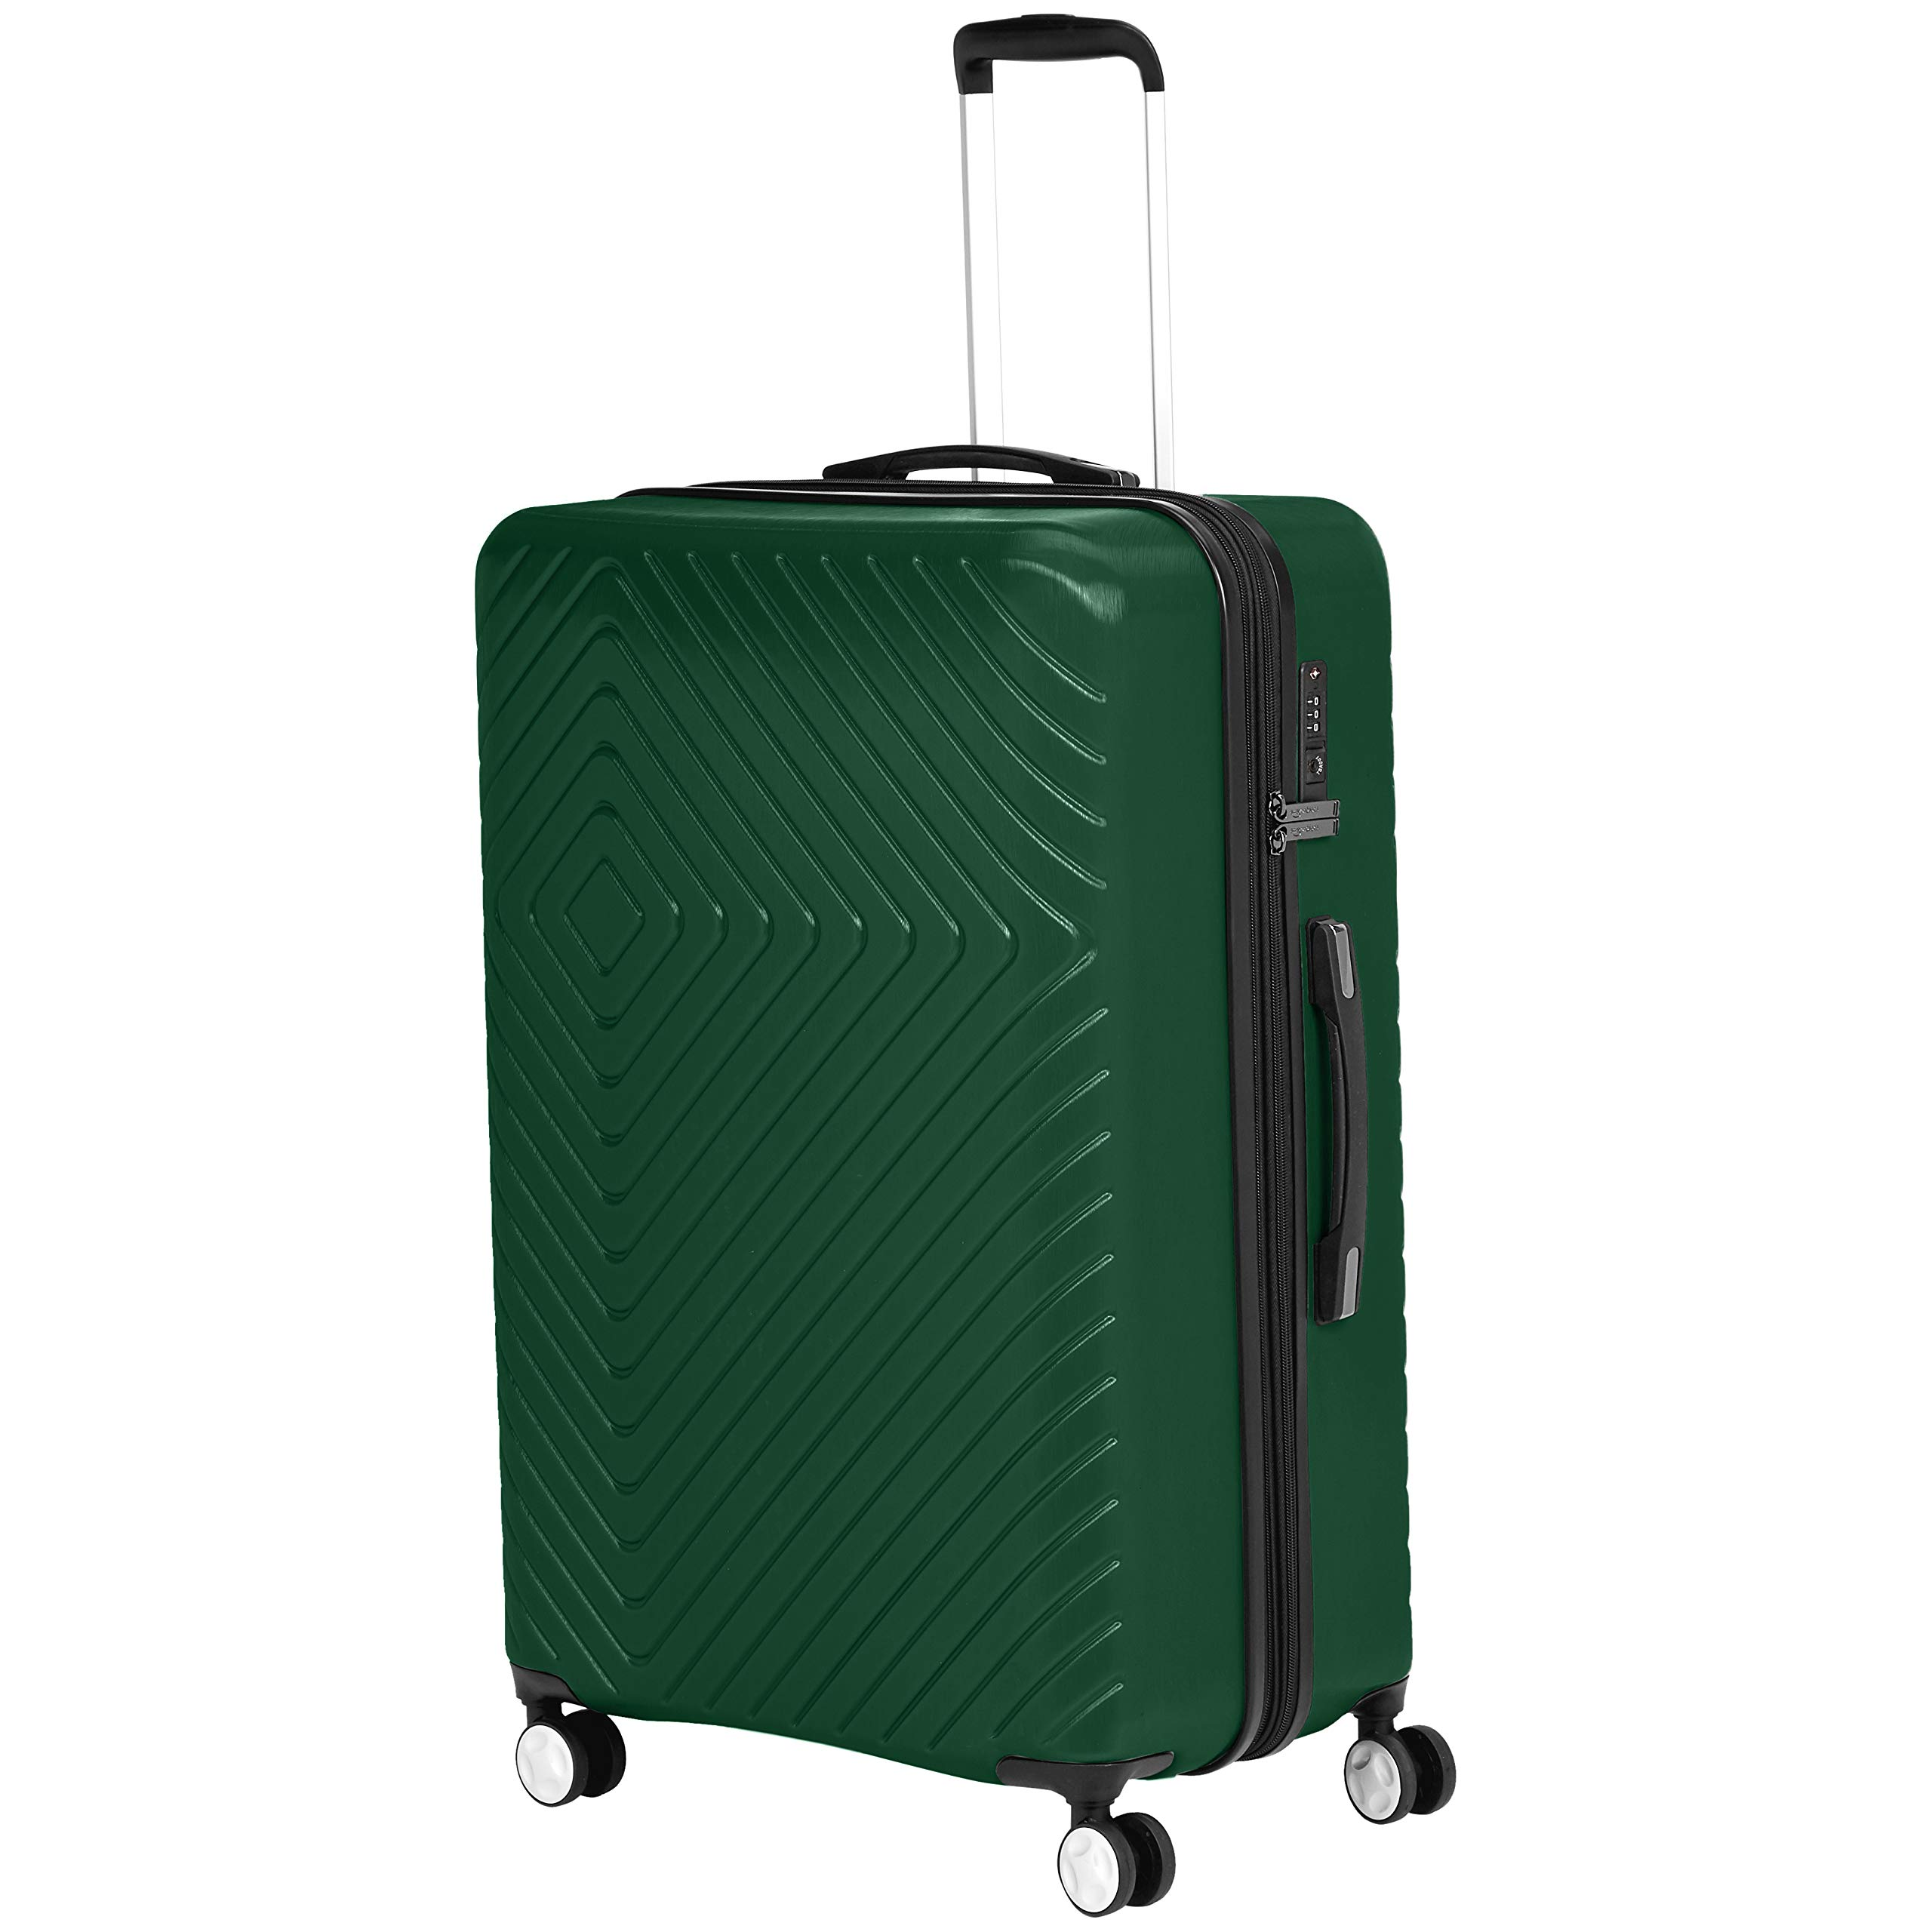 AmazonBasics Geometric Travel Luggage Expandable Suitcase Spinner with Wheels and Built-In TSA Lock, 28 Inch - Green